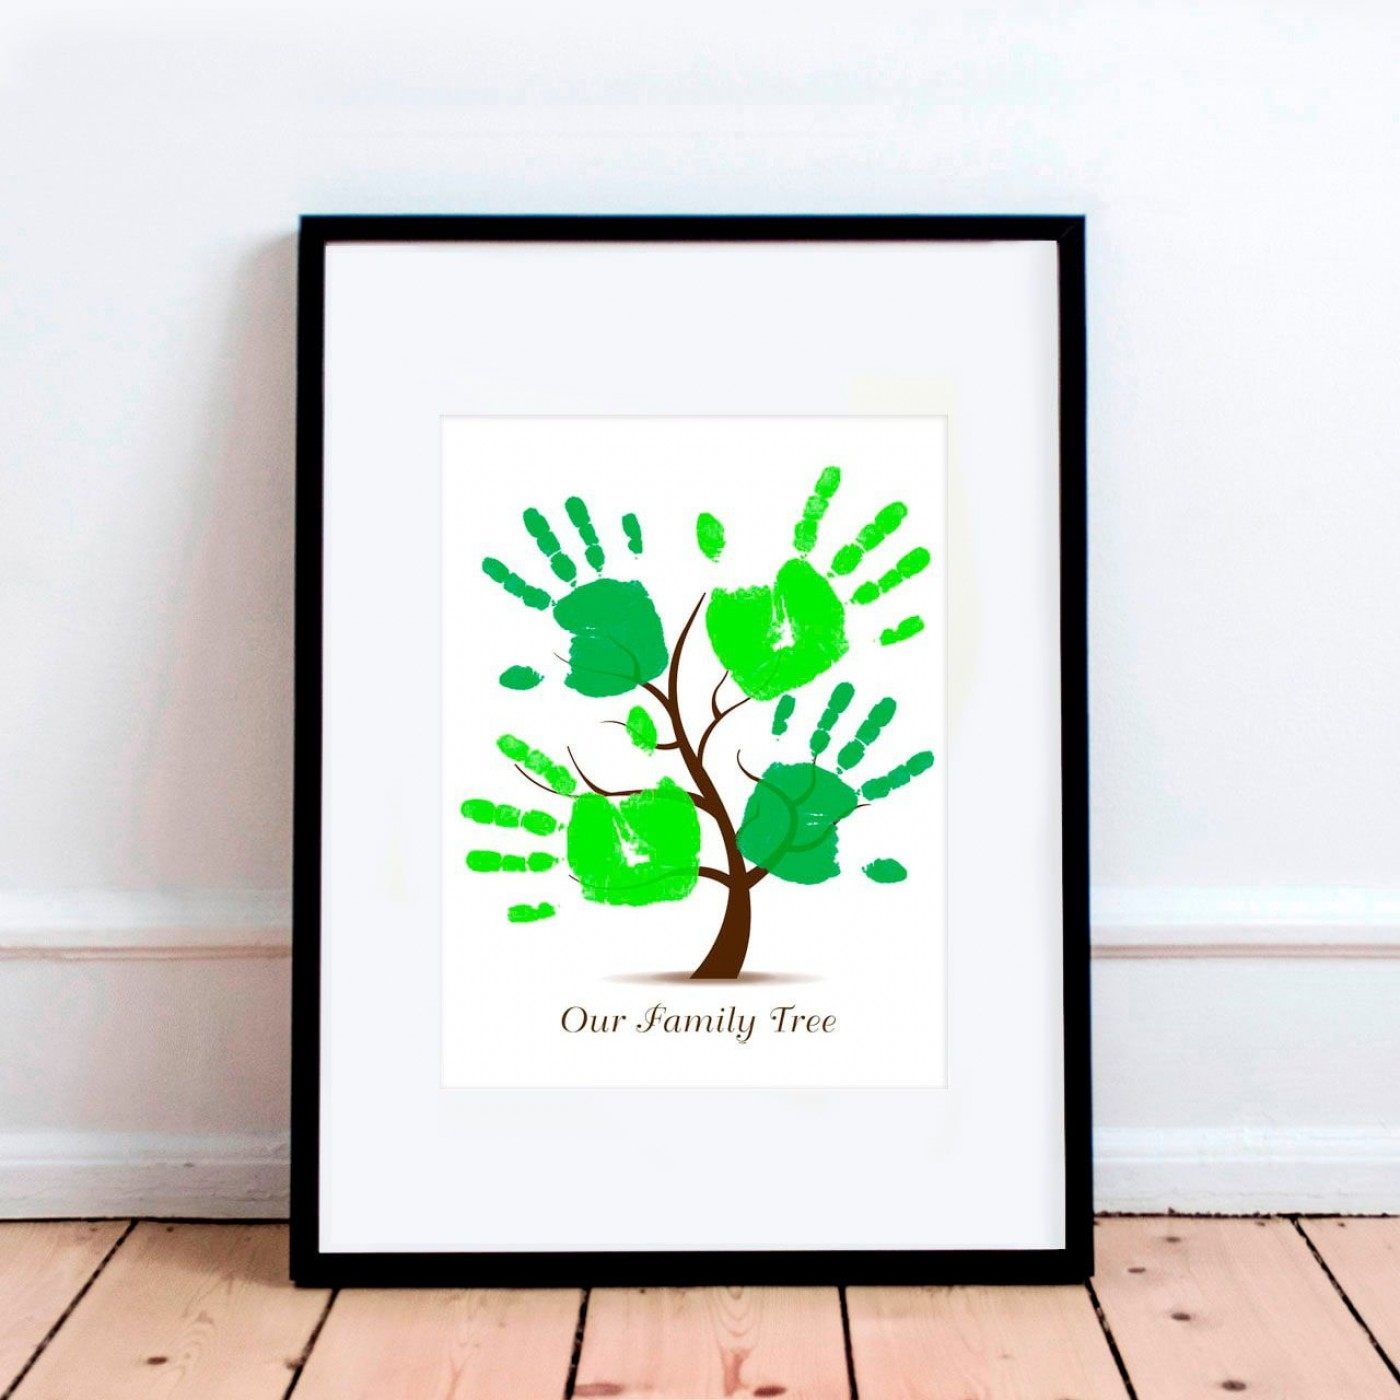 012 Outstanding Family Tree For Baby Book Template Inspiration  Printable1400